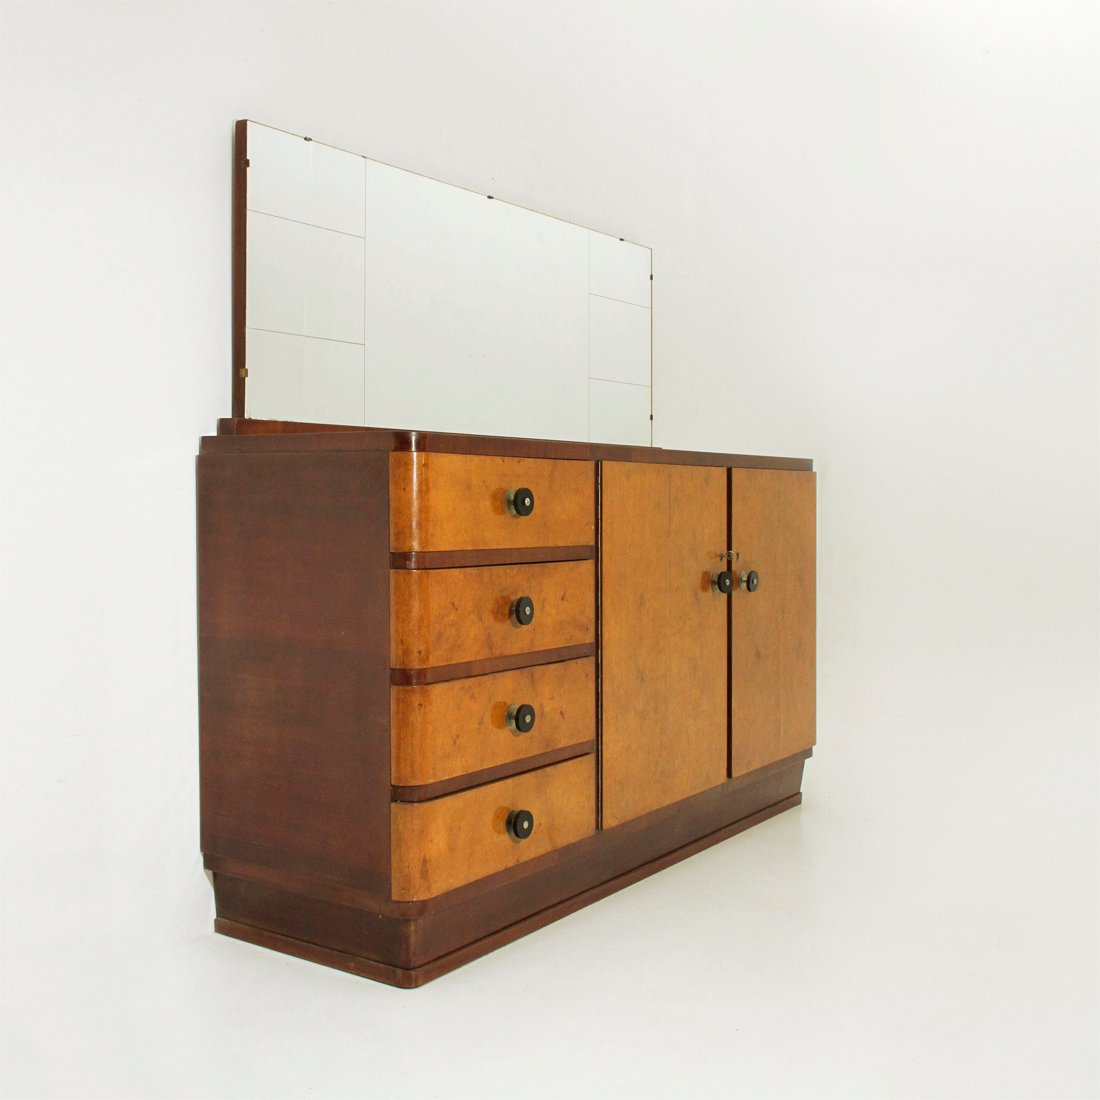 italienisches vintage sideboard spiegel 1930er bei pamono kaufen. Black Bedroom Furniture Sets. Home Design Ideas